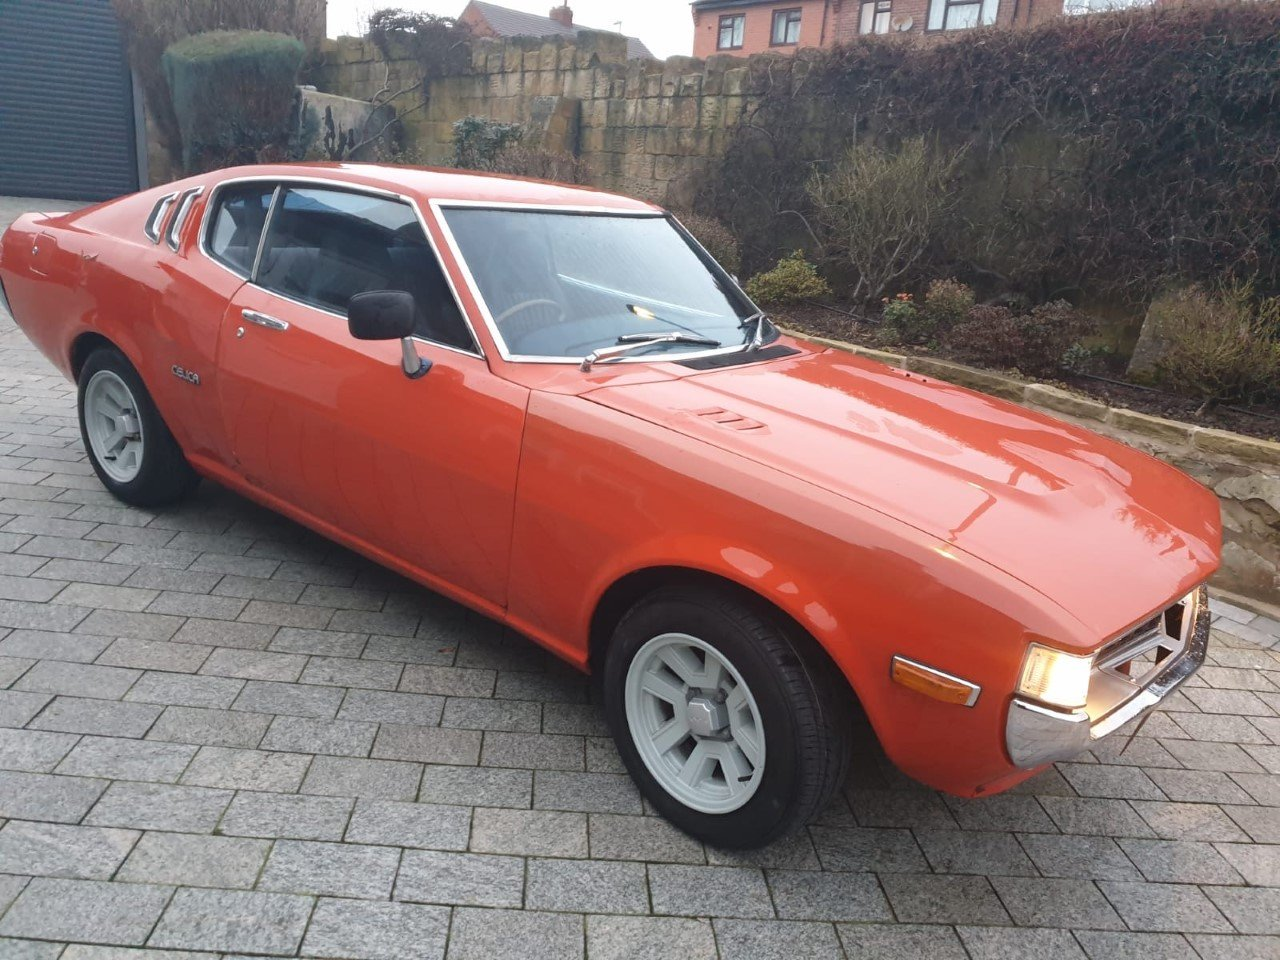 1978 Toyota celica ra28 1 owner from new uk car SOLD (picture 3 of 6)